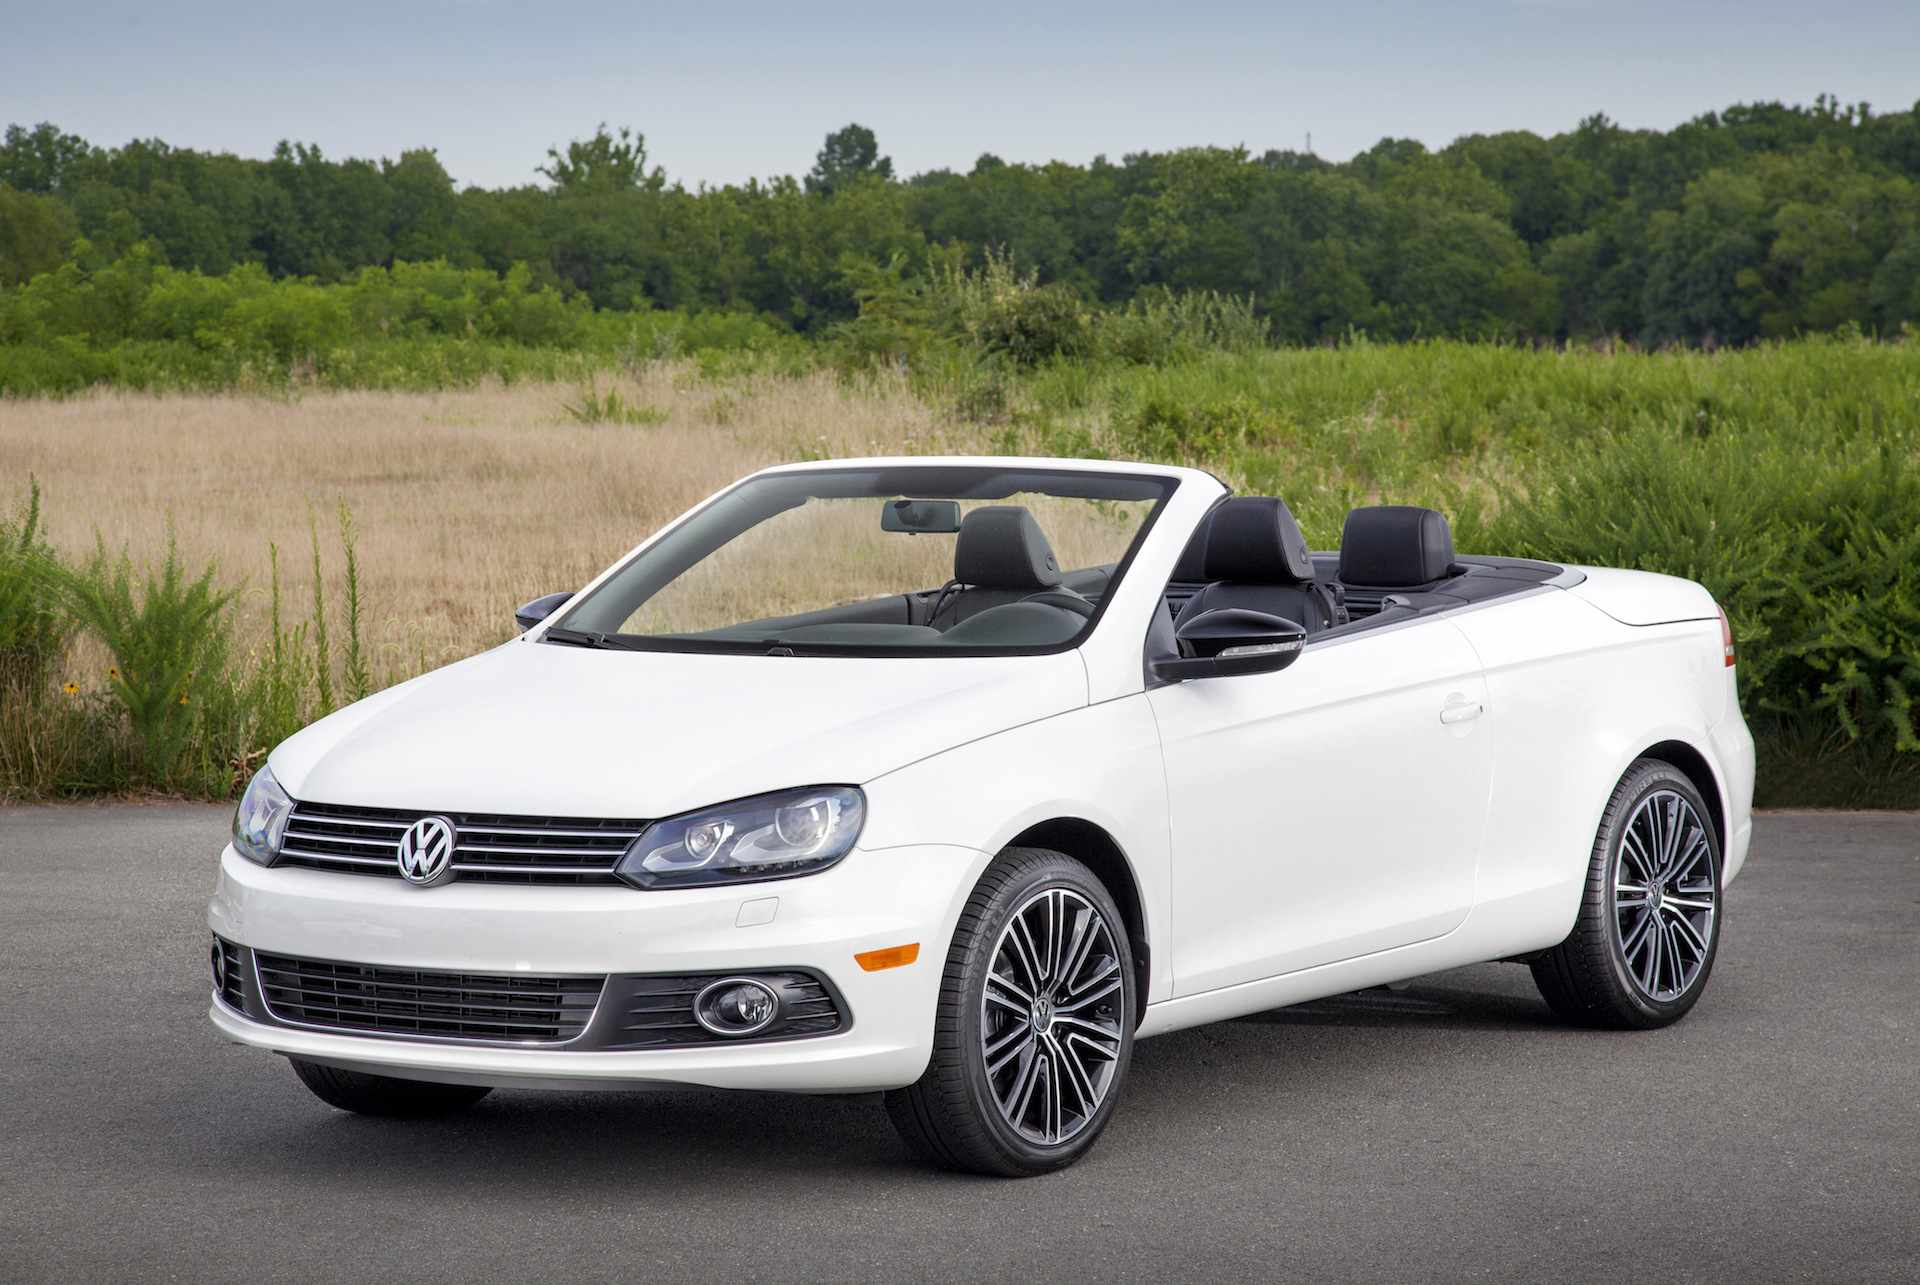 Audi Of Atlanta >> 2016 Volkswagen Eos (VW) Review, Ratings, Specs, Prices, and Photos - The Car Connection